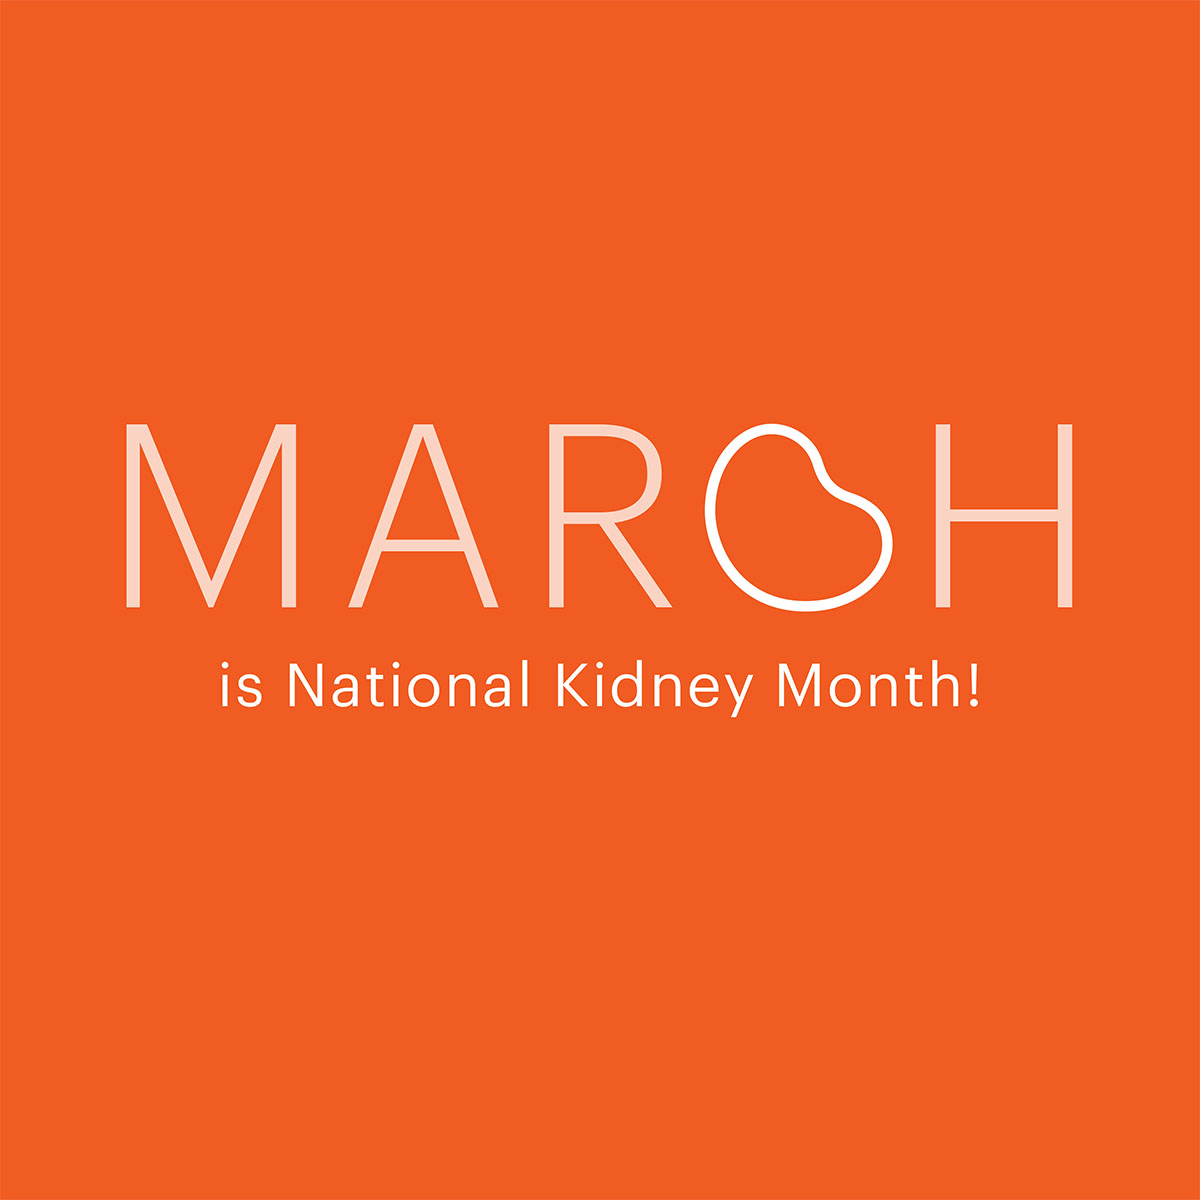 national kidney foundation A national kidney foundation blog if you have chronic hepatitis c, i do recommend treatment studies have shown that patients with chronic hepatitis c have a high rate of liver cancer if the virus is not treated.